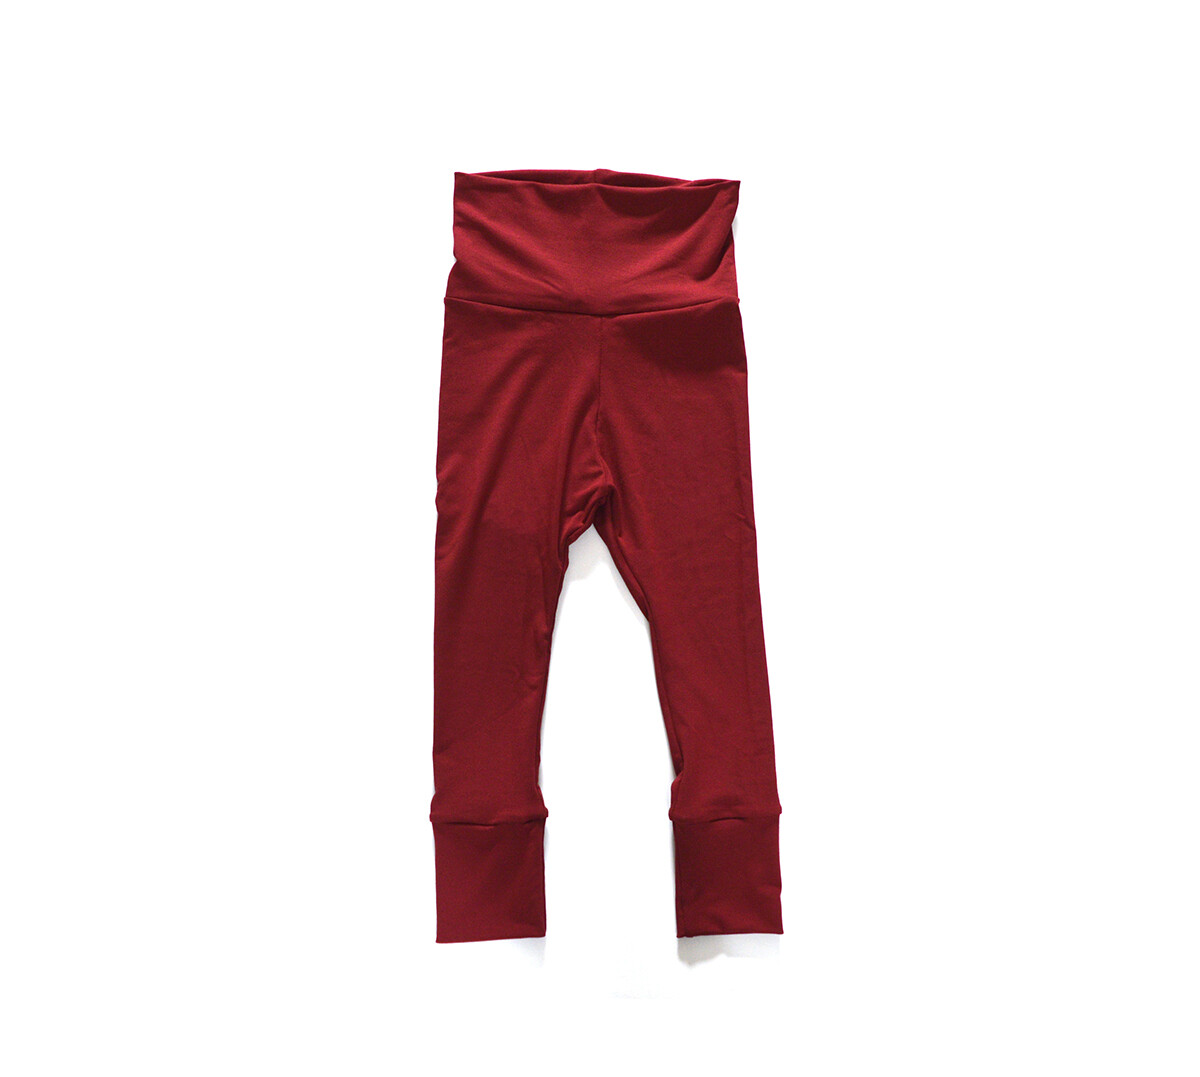 Little Sprout Pants™ in Brick | Grow With Me Leggings - Made with Bamboo!